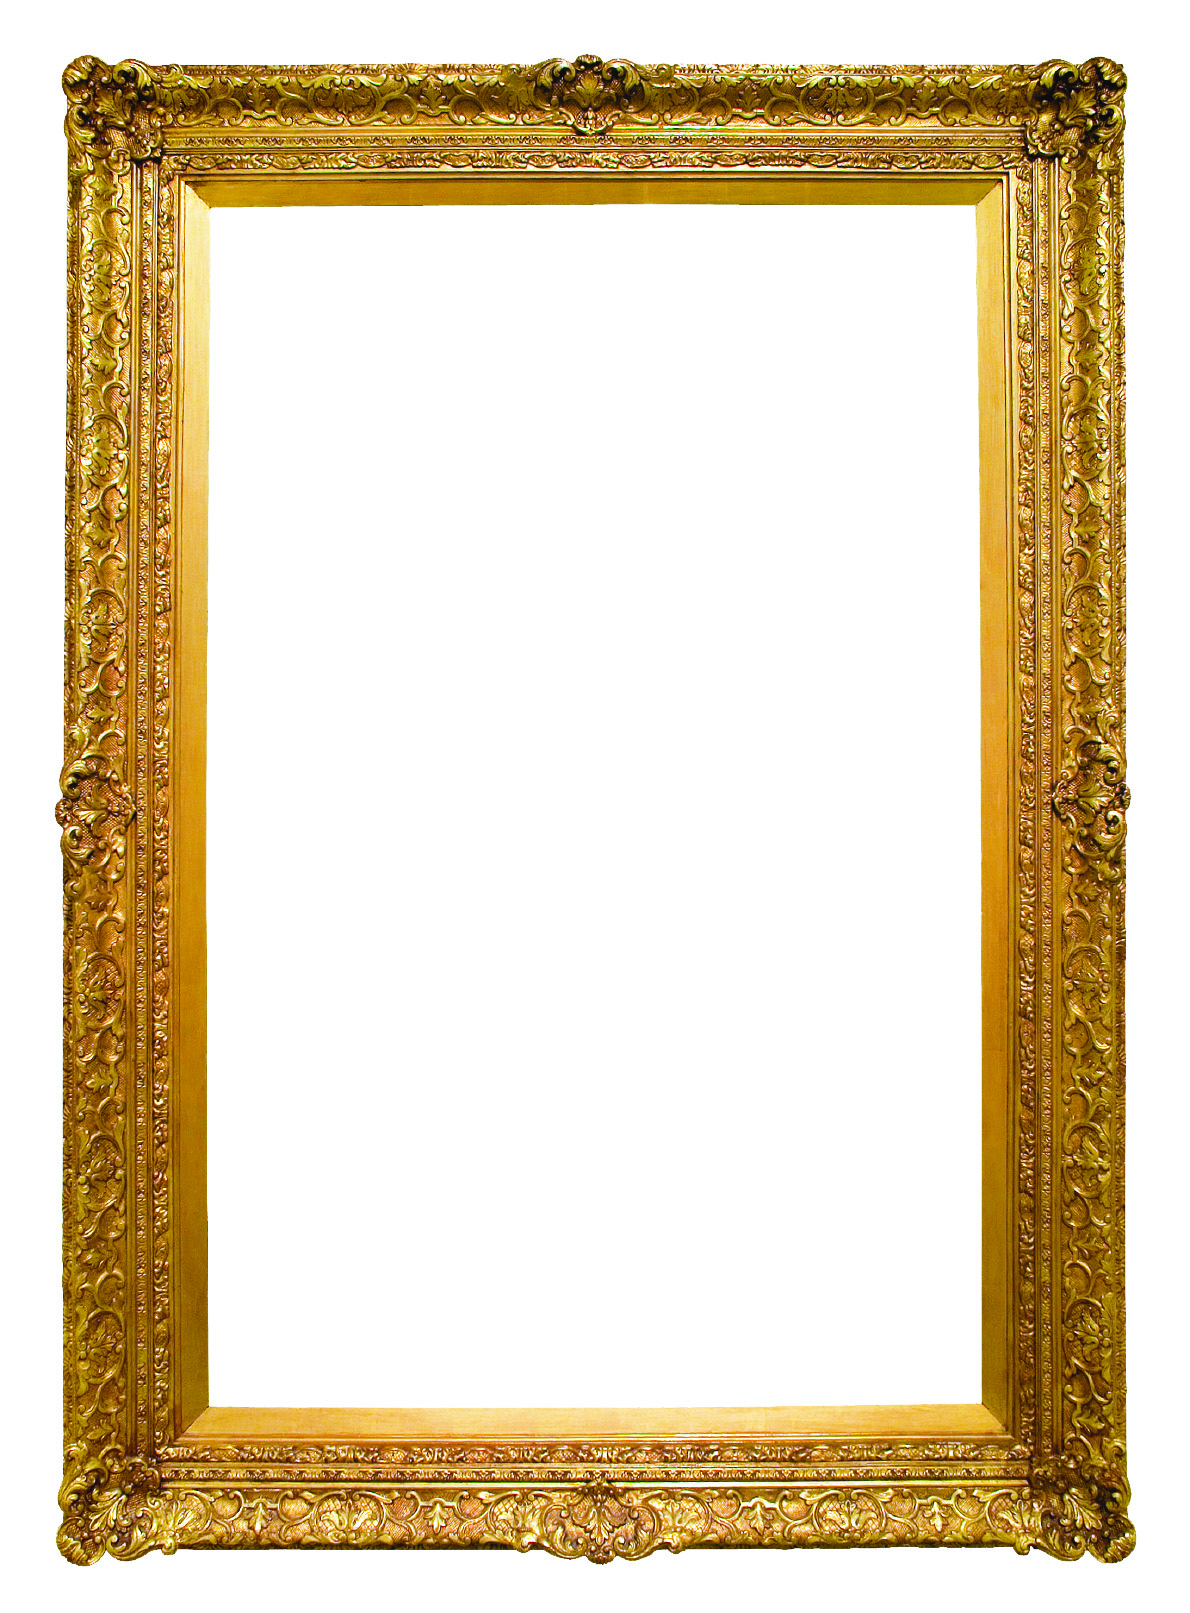 Glasses Frame Psd : 14 Golden Border PSD Images - PSD Gold Border Frame, Gold ...